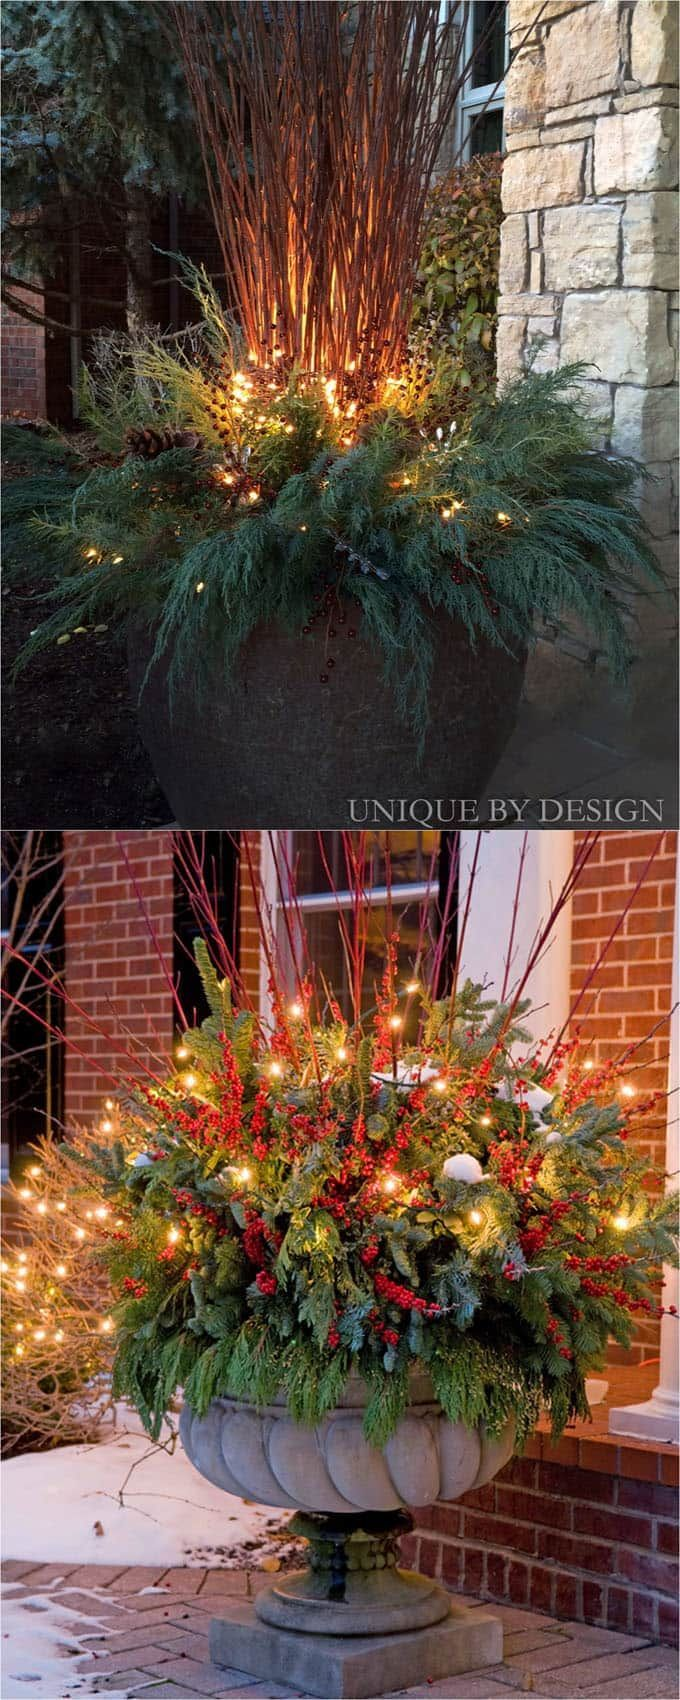 Describing beautiful christmas decorations - Best 25 Christmas Plants Ideas On Pinterest Diy Christmas Centerpieces Diy Christmas Centrepieces And Spray Paint Mason Jars